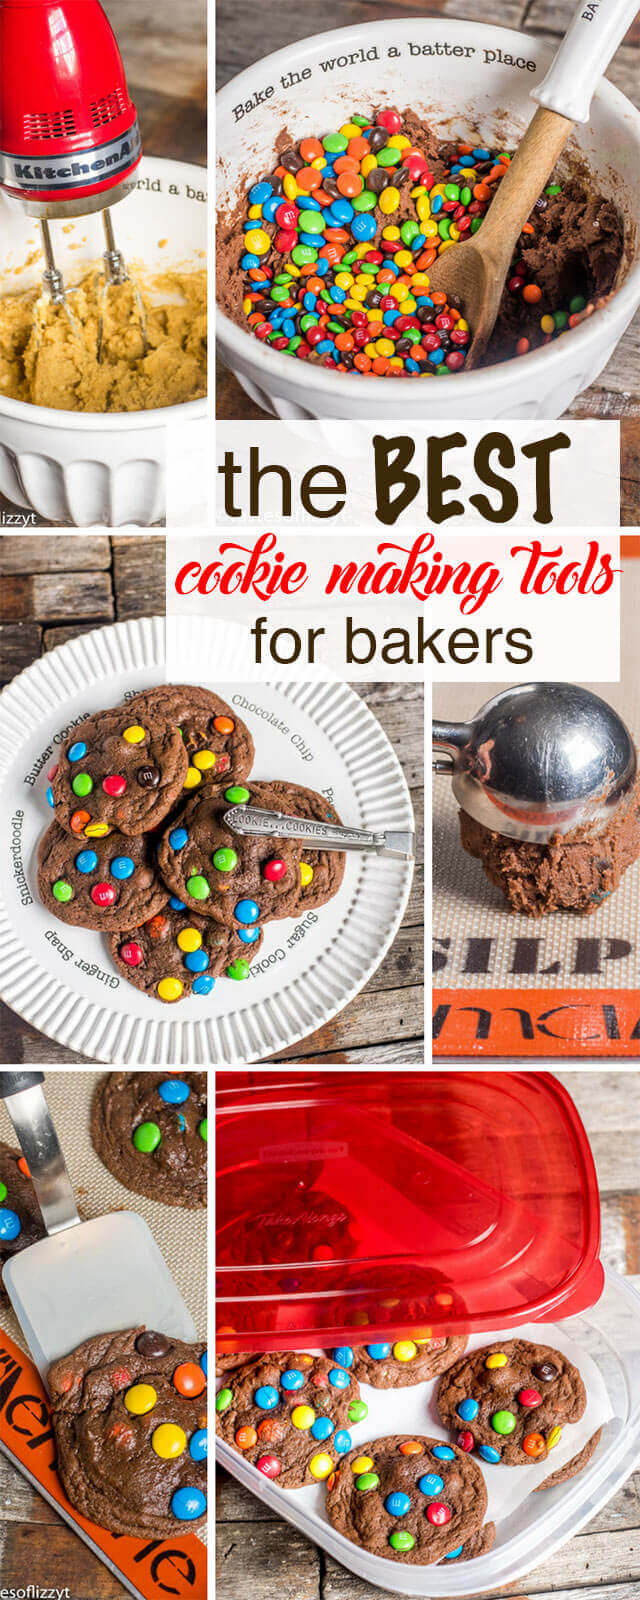 Baking Tools List best cookie making tools for homemade cookies {14 tools you need!}